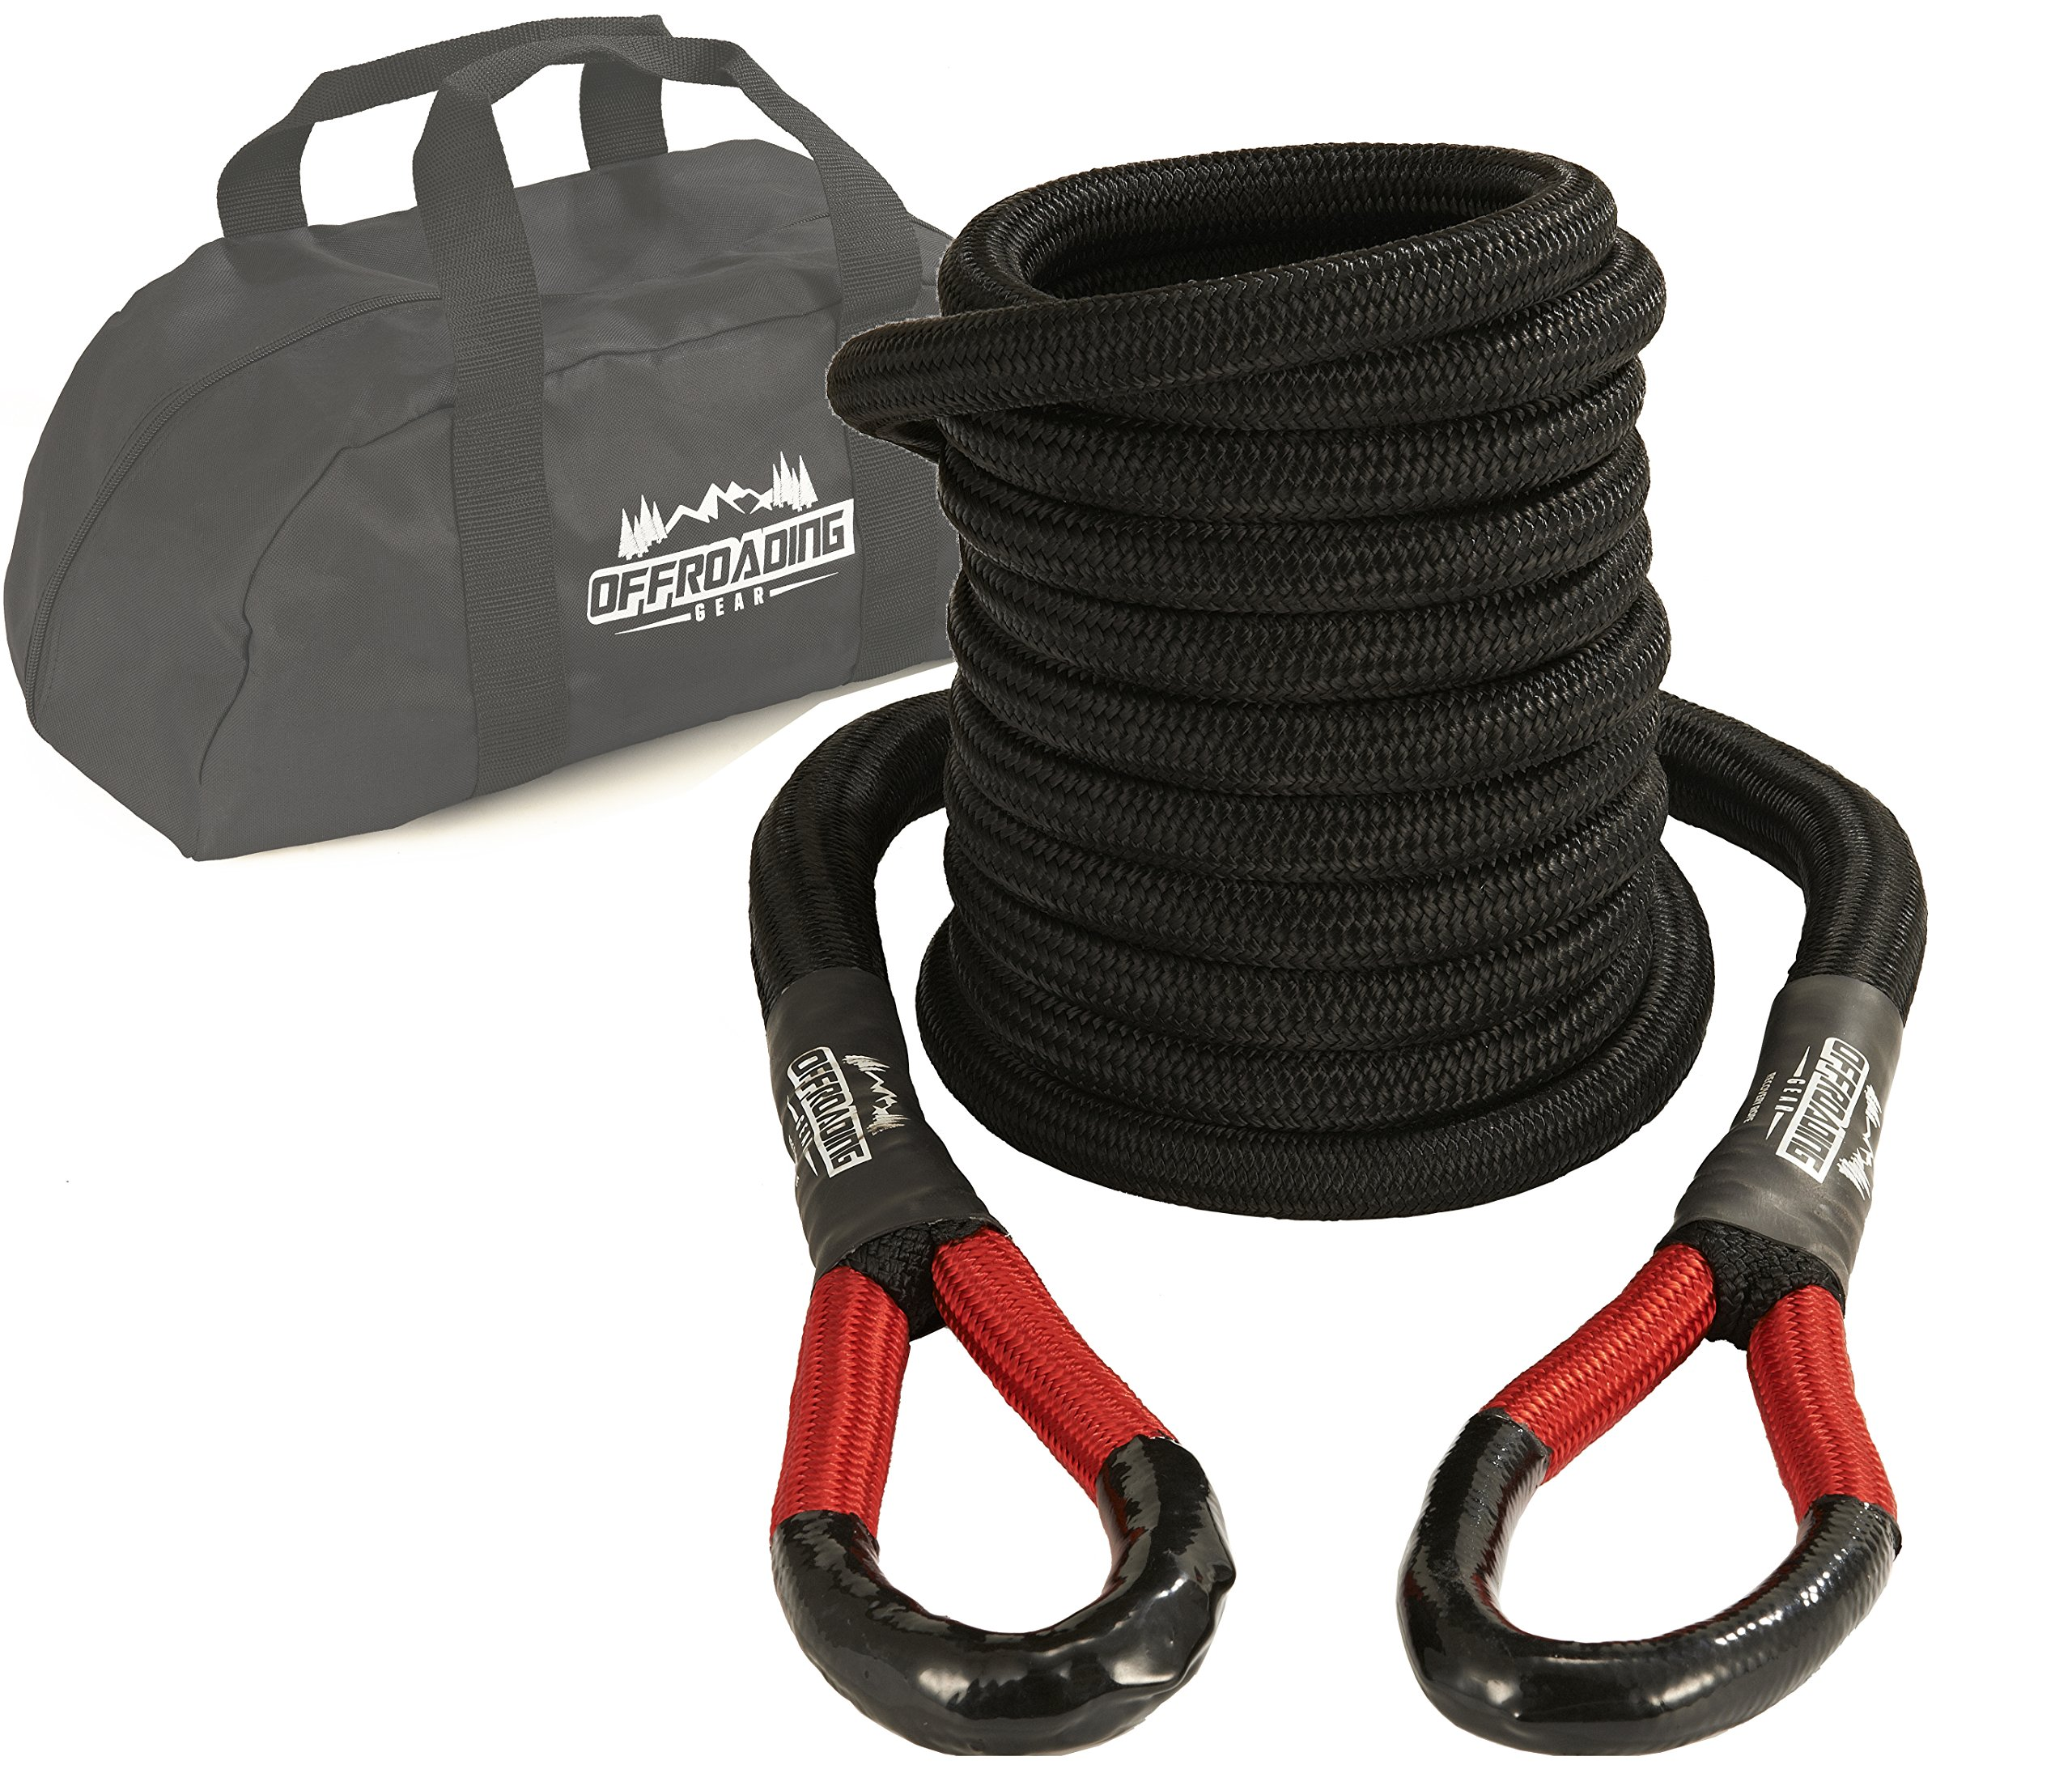 20'x7/8'' Kinetic Recovery & Tow Rope, Black (28,600 lbs) for 4x4/Off-Roading/Jeep/Car/SUV/ATV by Offroading Gear